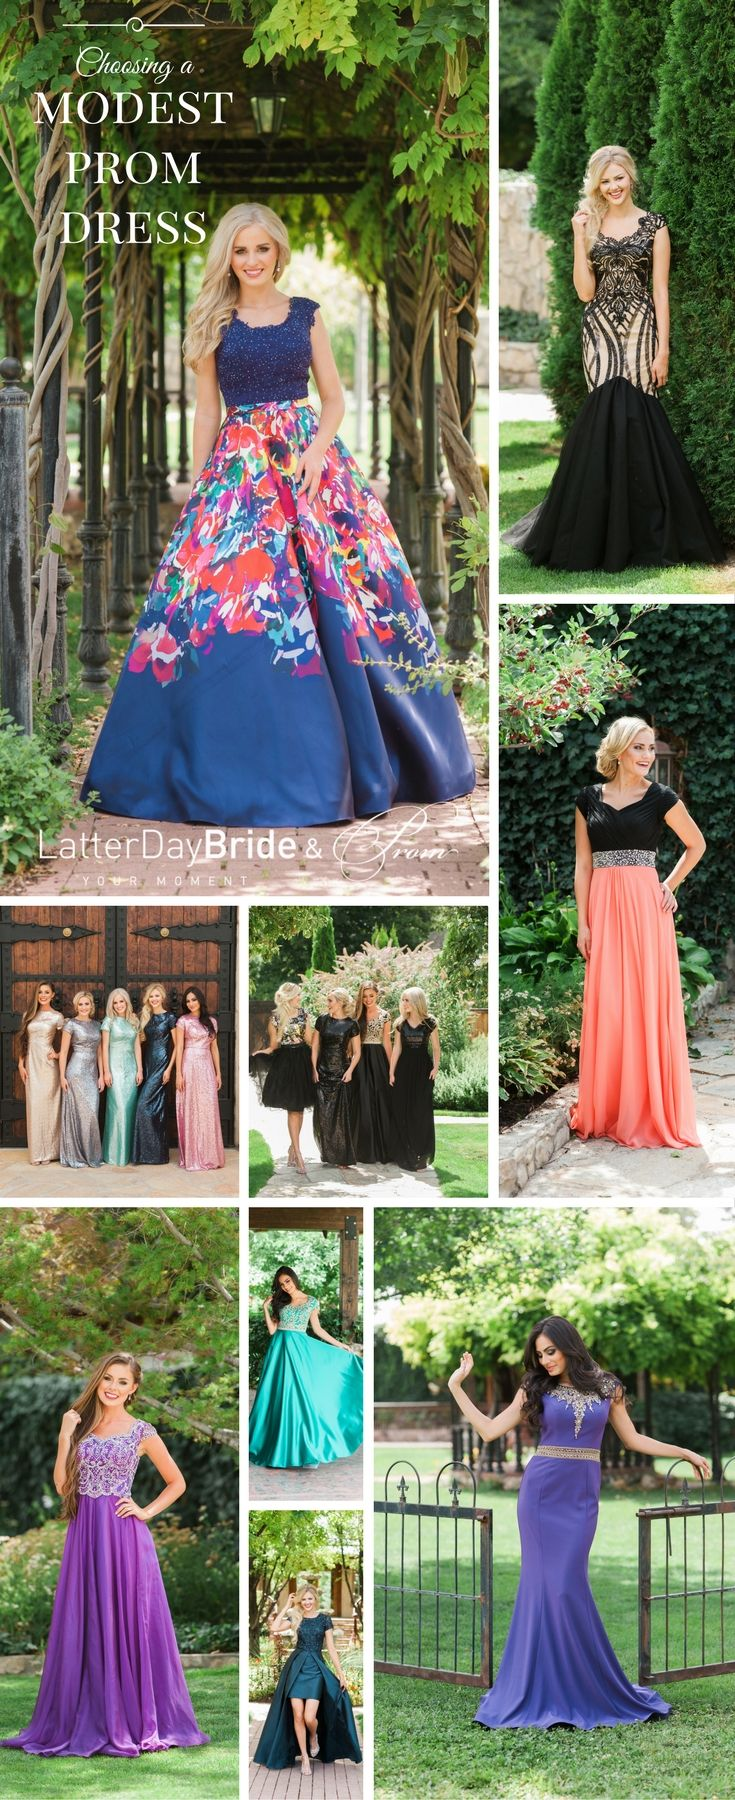 Choosing a Modest Prom Dress | LatterDayBride & Prom | Mormon Prom | LDS | Modesty | Formal gowns with sleeves | Worldwide Shipping | Sparkly Prom Dress | Elegant | Salt Lake City | Utah #modestprom